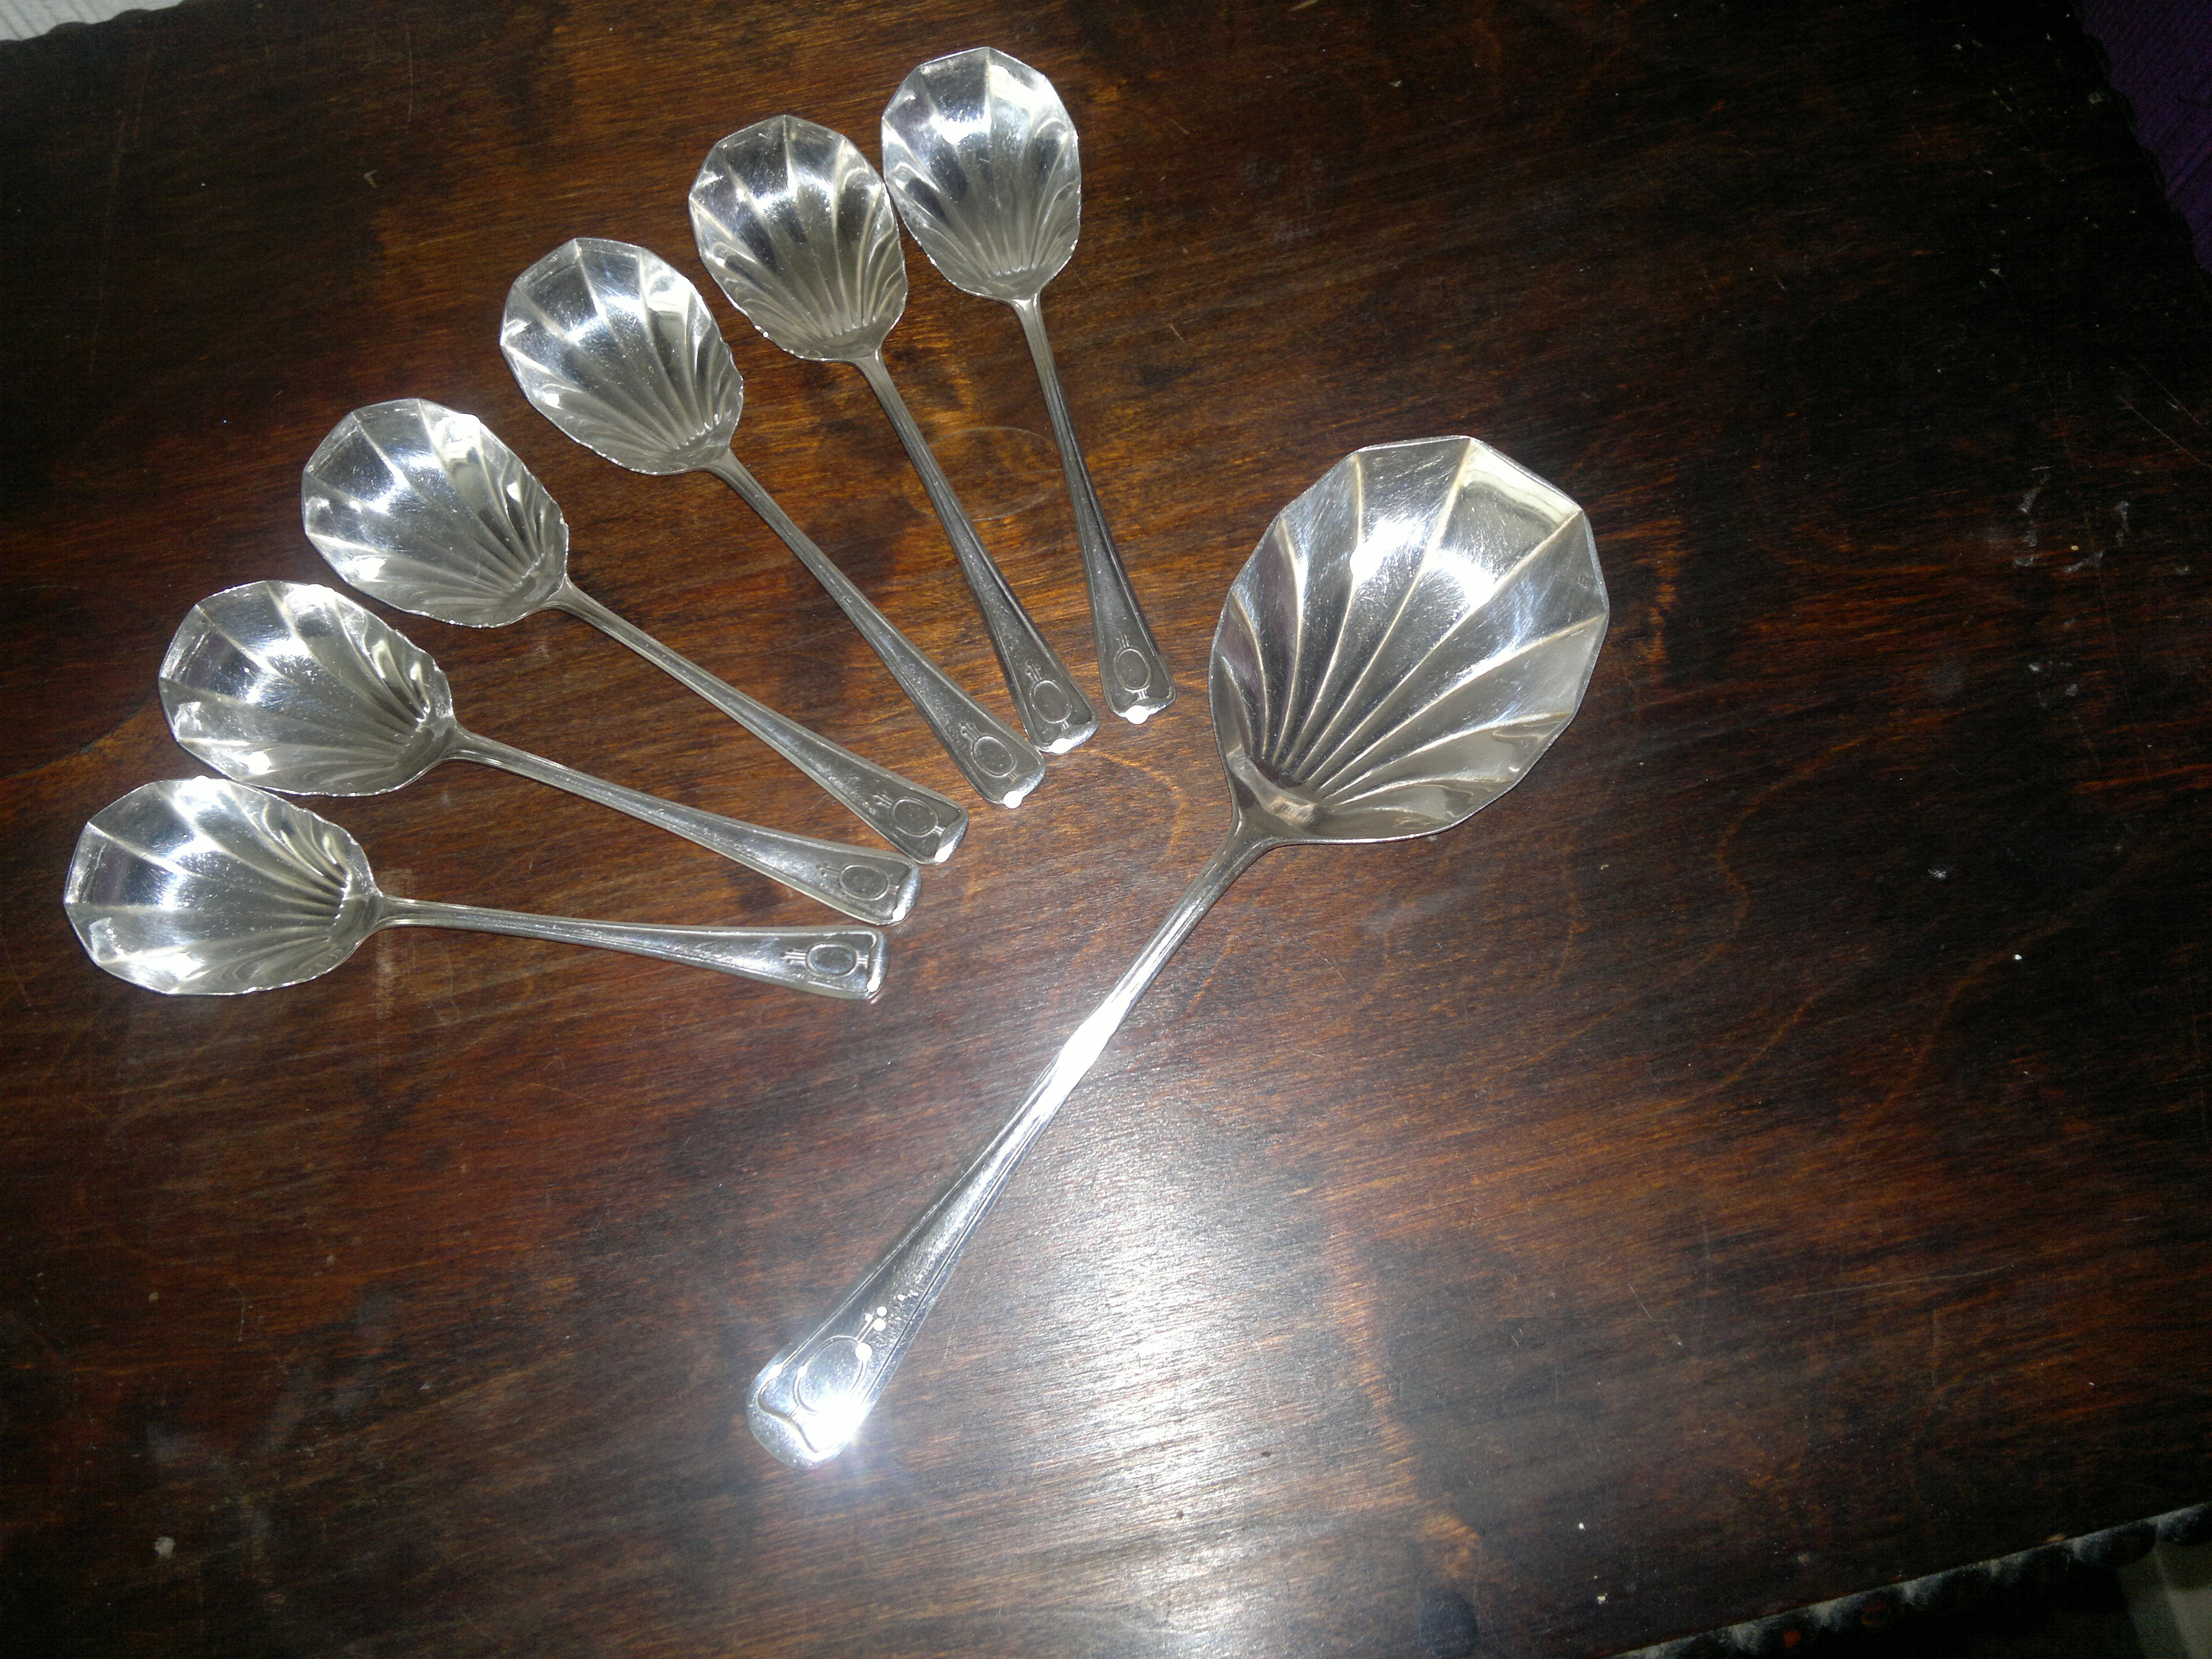 Set of Vintage Shell Desert Spoons